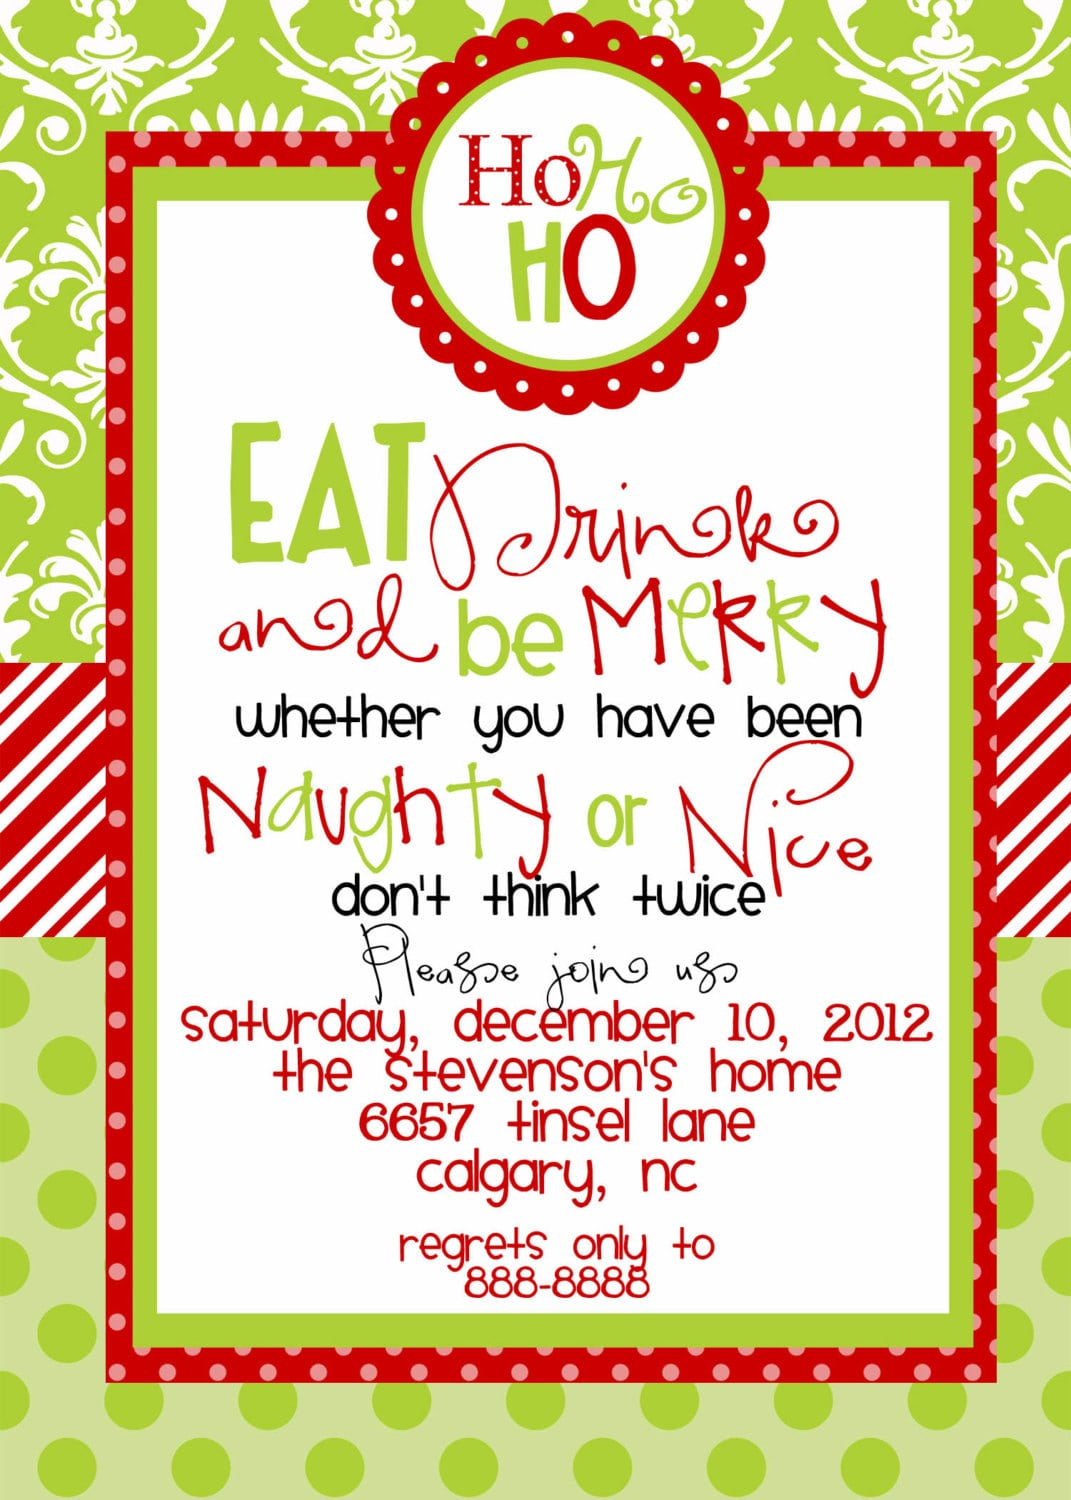 Office Christmas Party Invitation Wording Cool Office Christmas